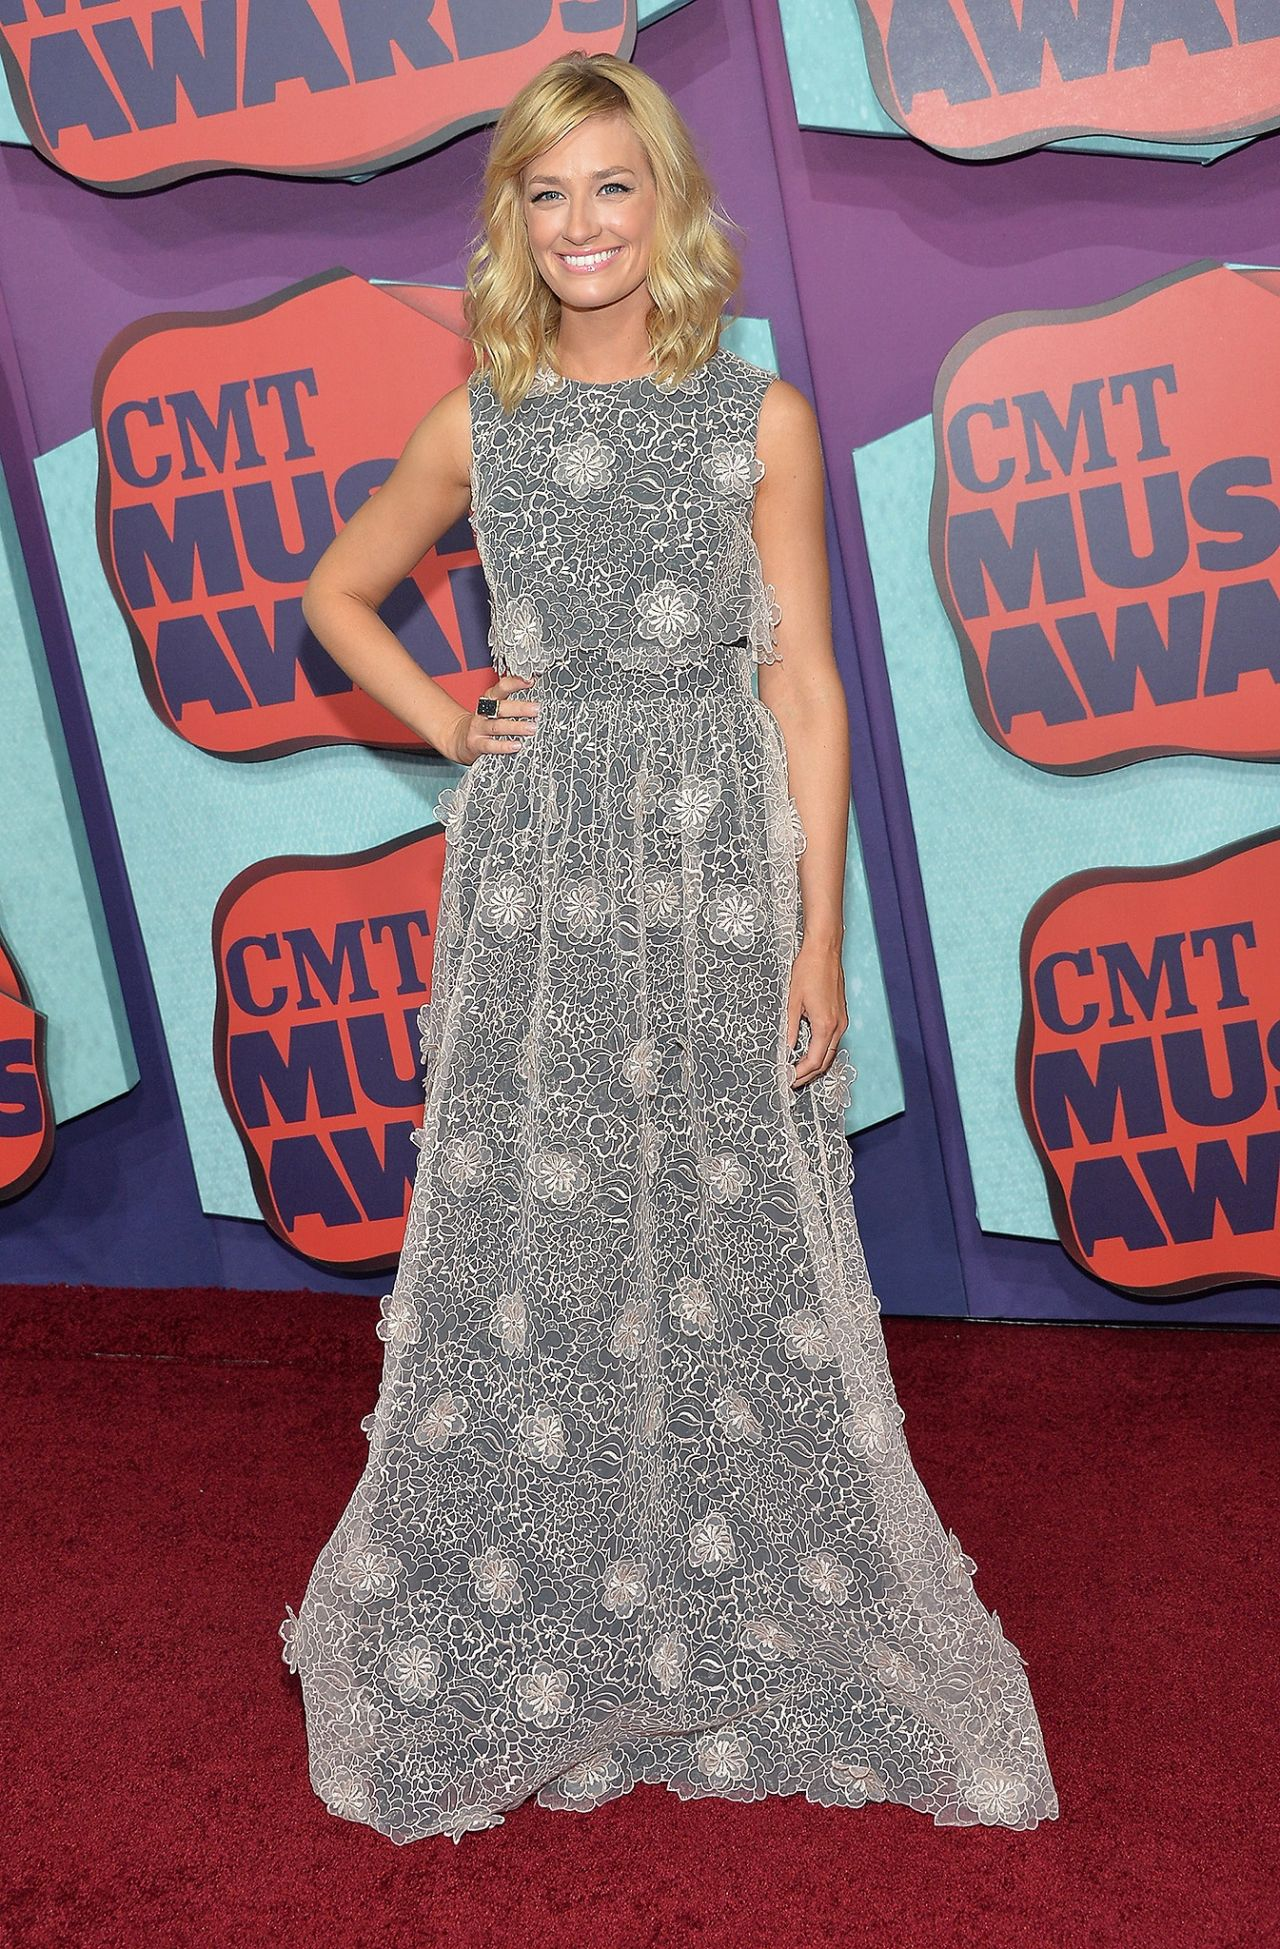 Beth Behrs Wearing Erin Fetherston Gown - 2014 CMT Music Awards